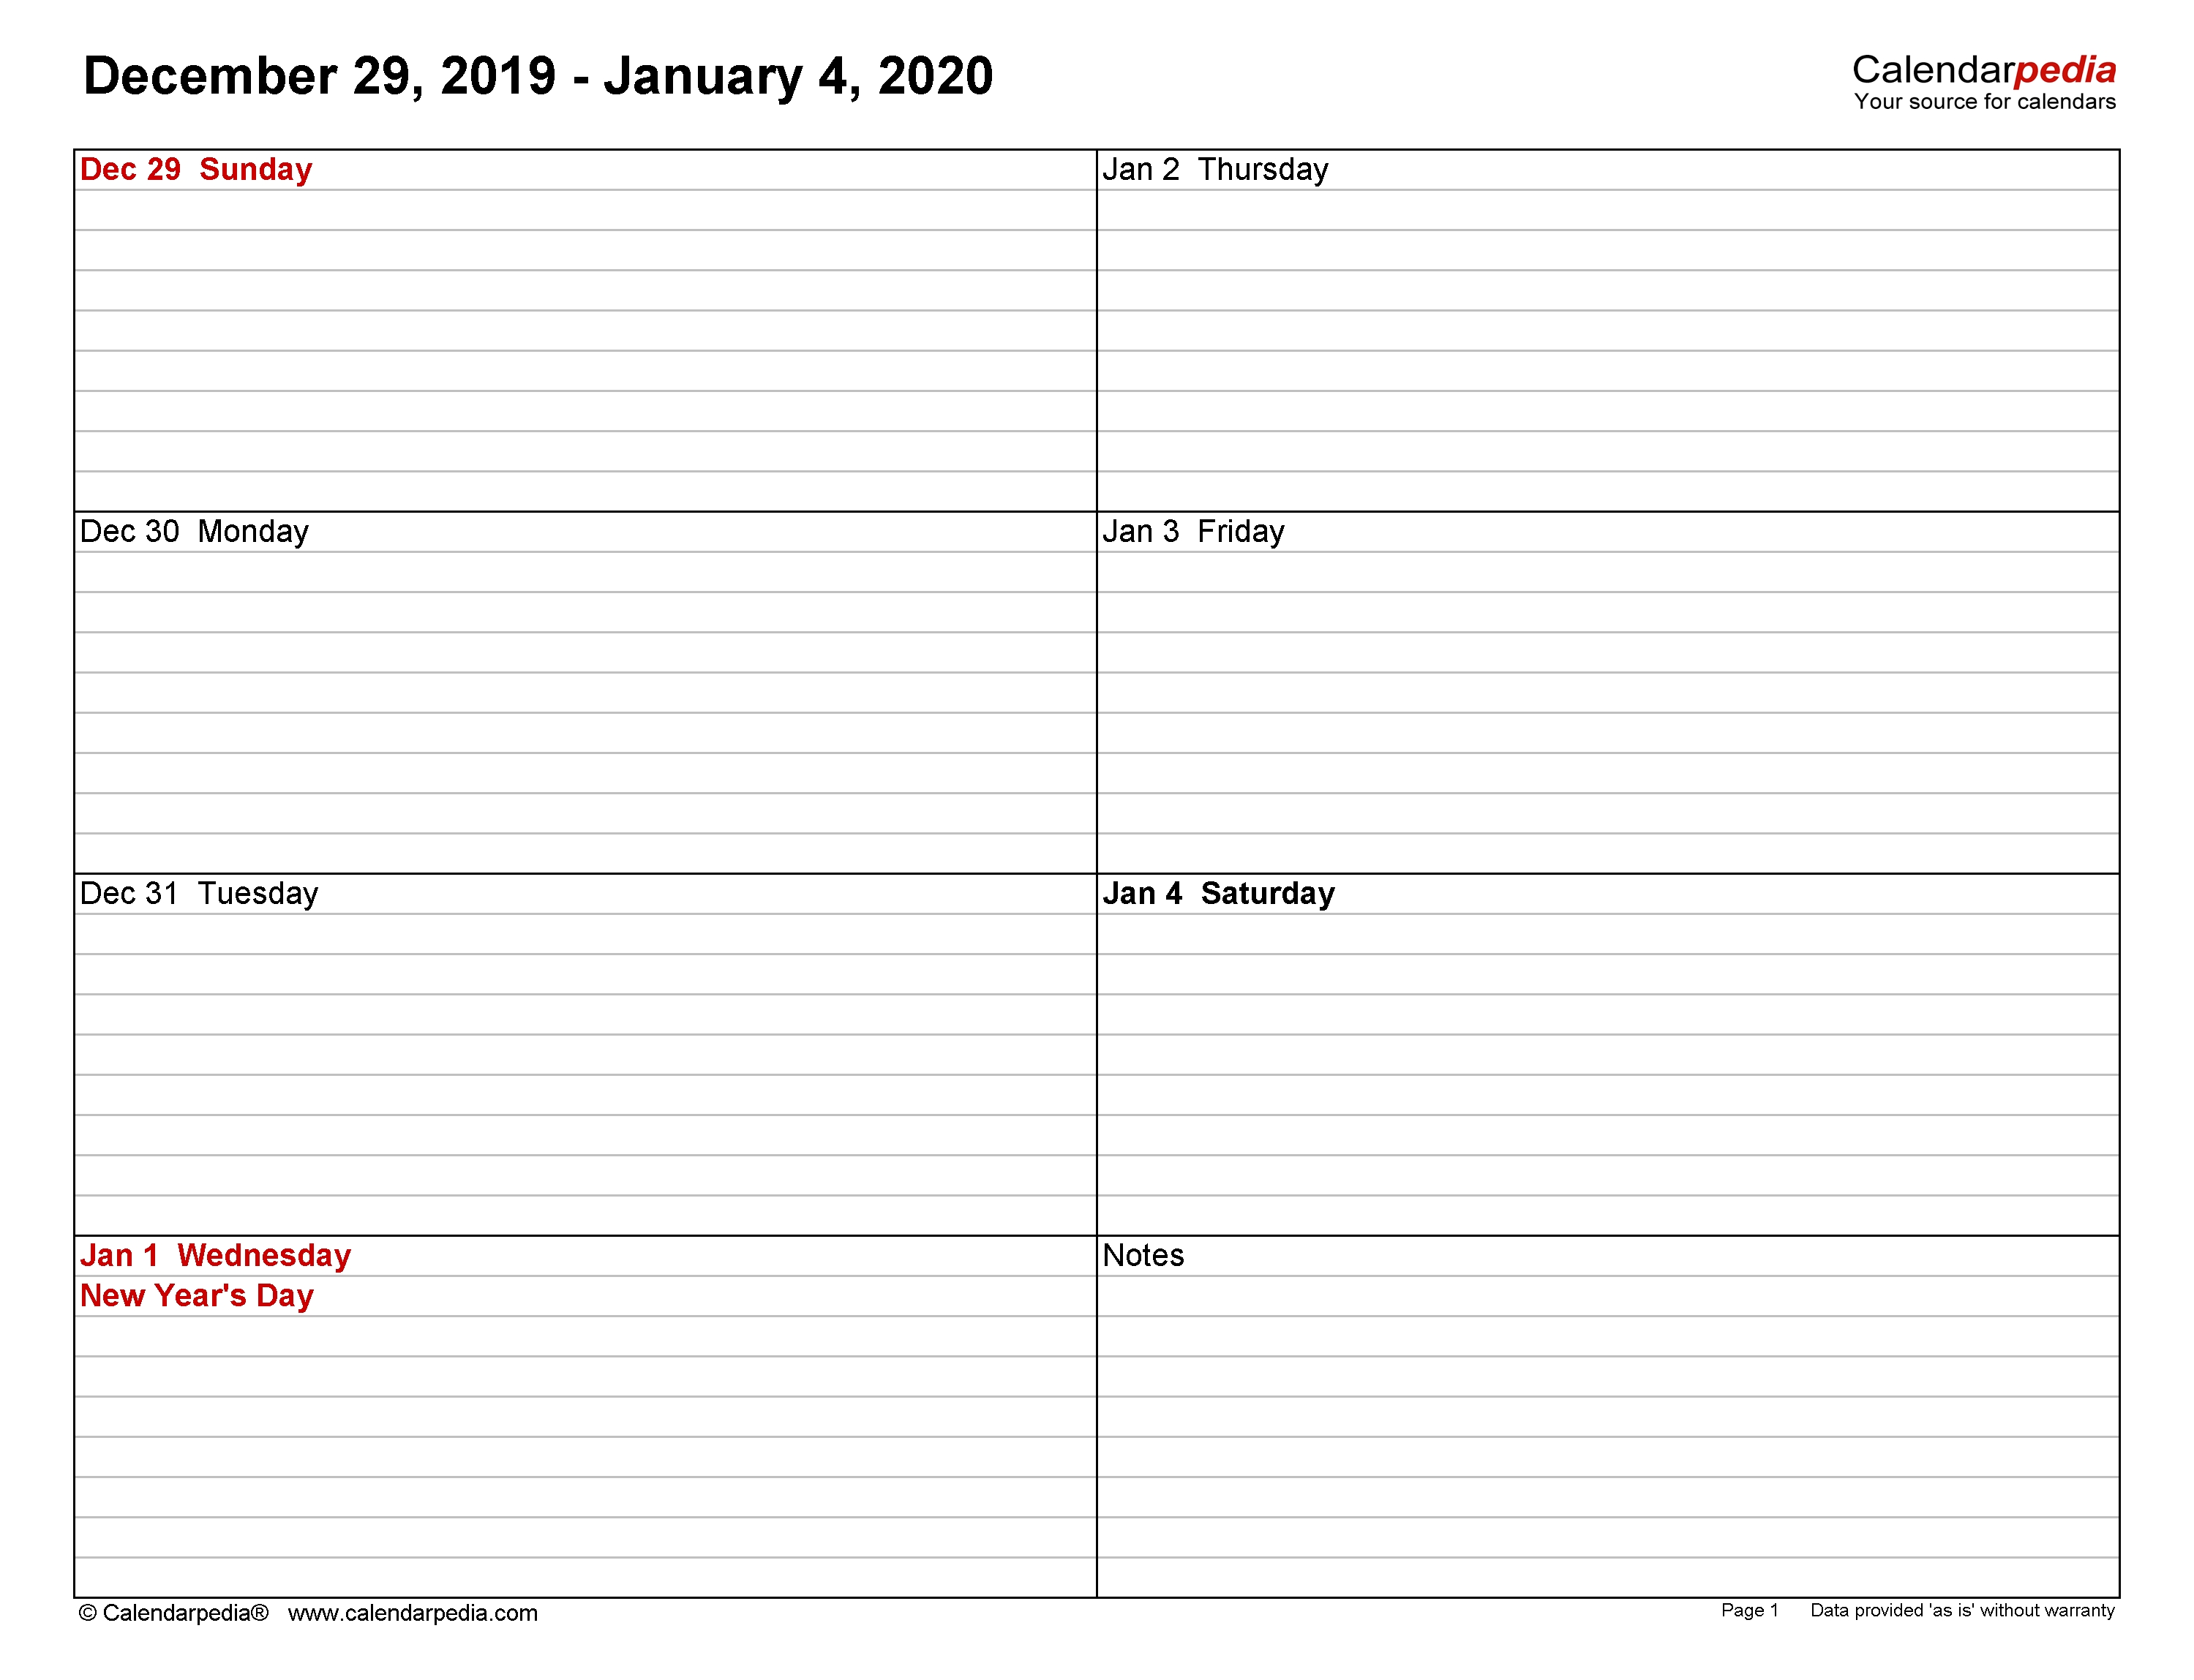 Weekly Calendars 2020 For Word - 12 Free Printable Templates inside Free Printable One Week Calendar 2020